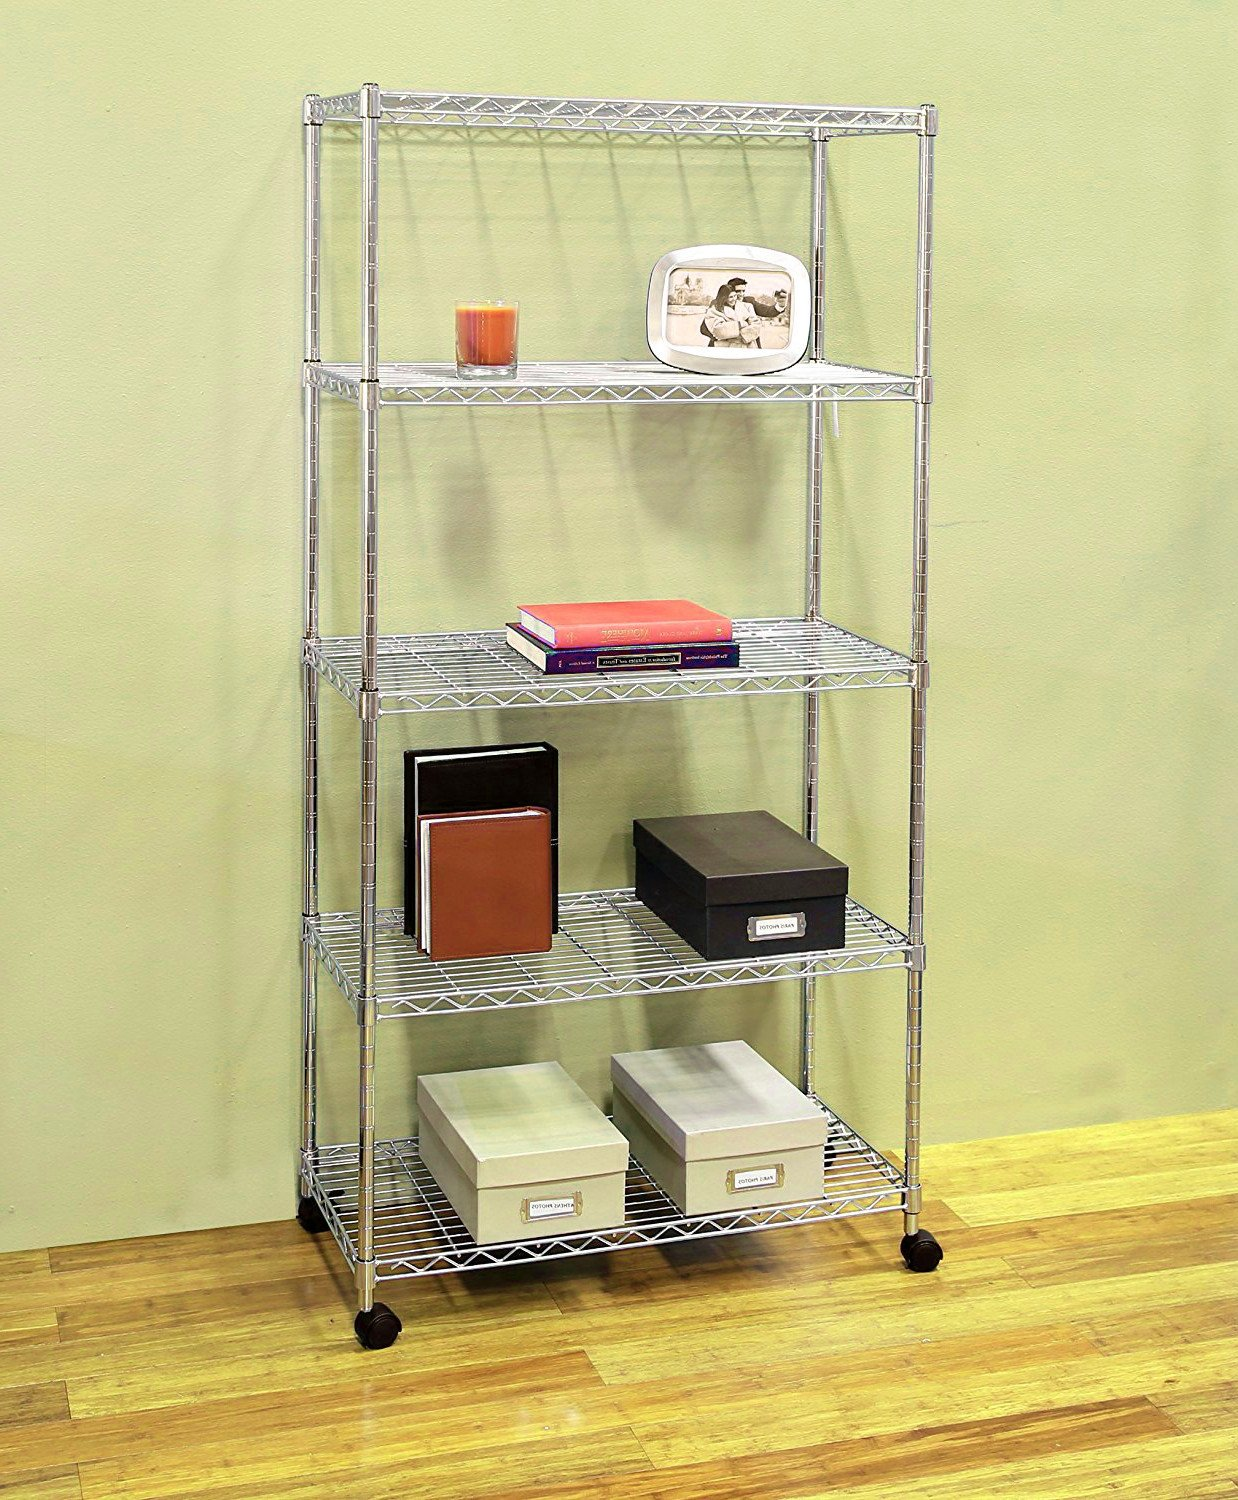 Portable Wire Shelving five Tier Rack Adjustable Chrome with Wheels. Rolling Storage Unit to Organize your Kitchen, Bathroom, Garage, Office, eBook by jn.widetrade